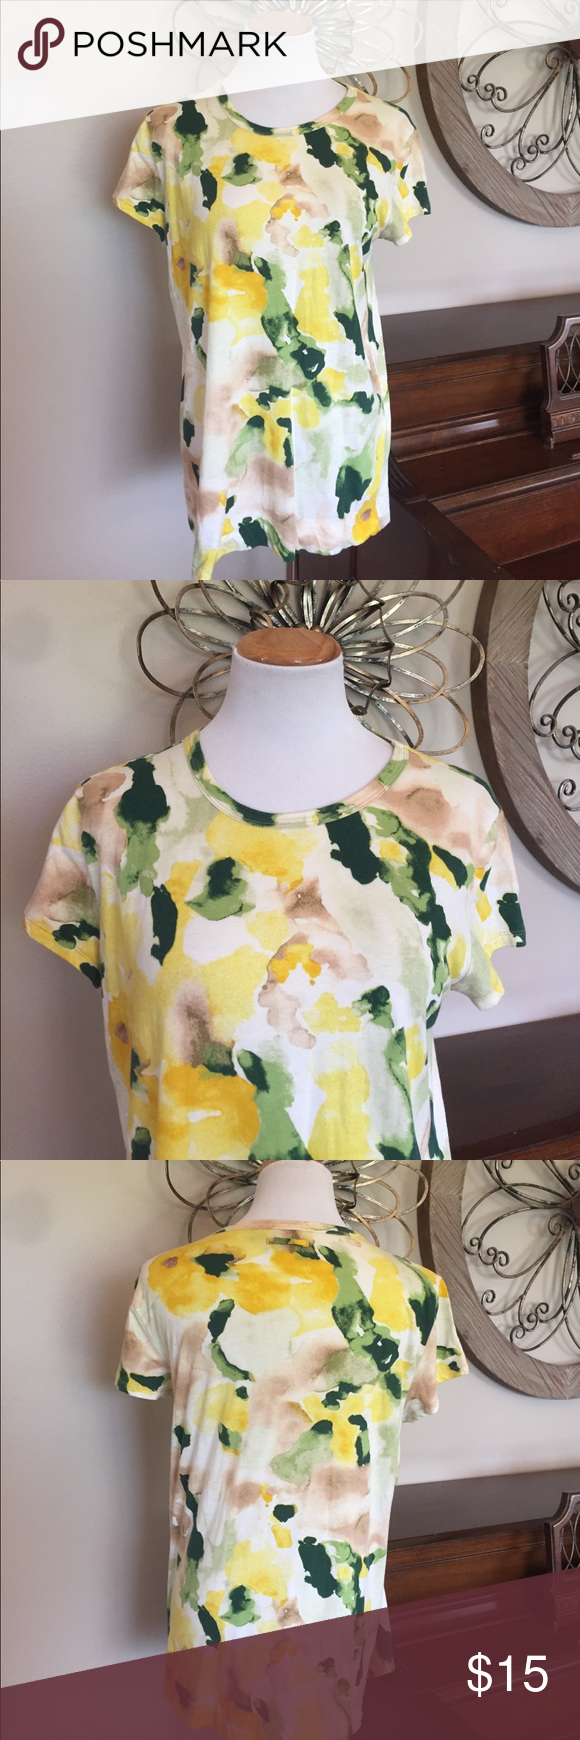 Simply Vera Wang Size Large Tee / Top Excellent Condition! Size Large by Simply Vera Wang - 100% Cotton Simply Vera Vera Wang Tops Tees - Short Sleeve